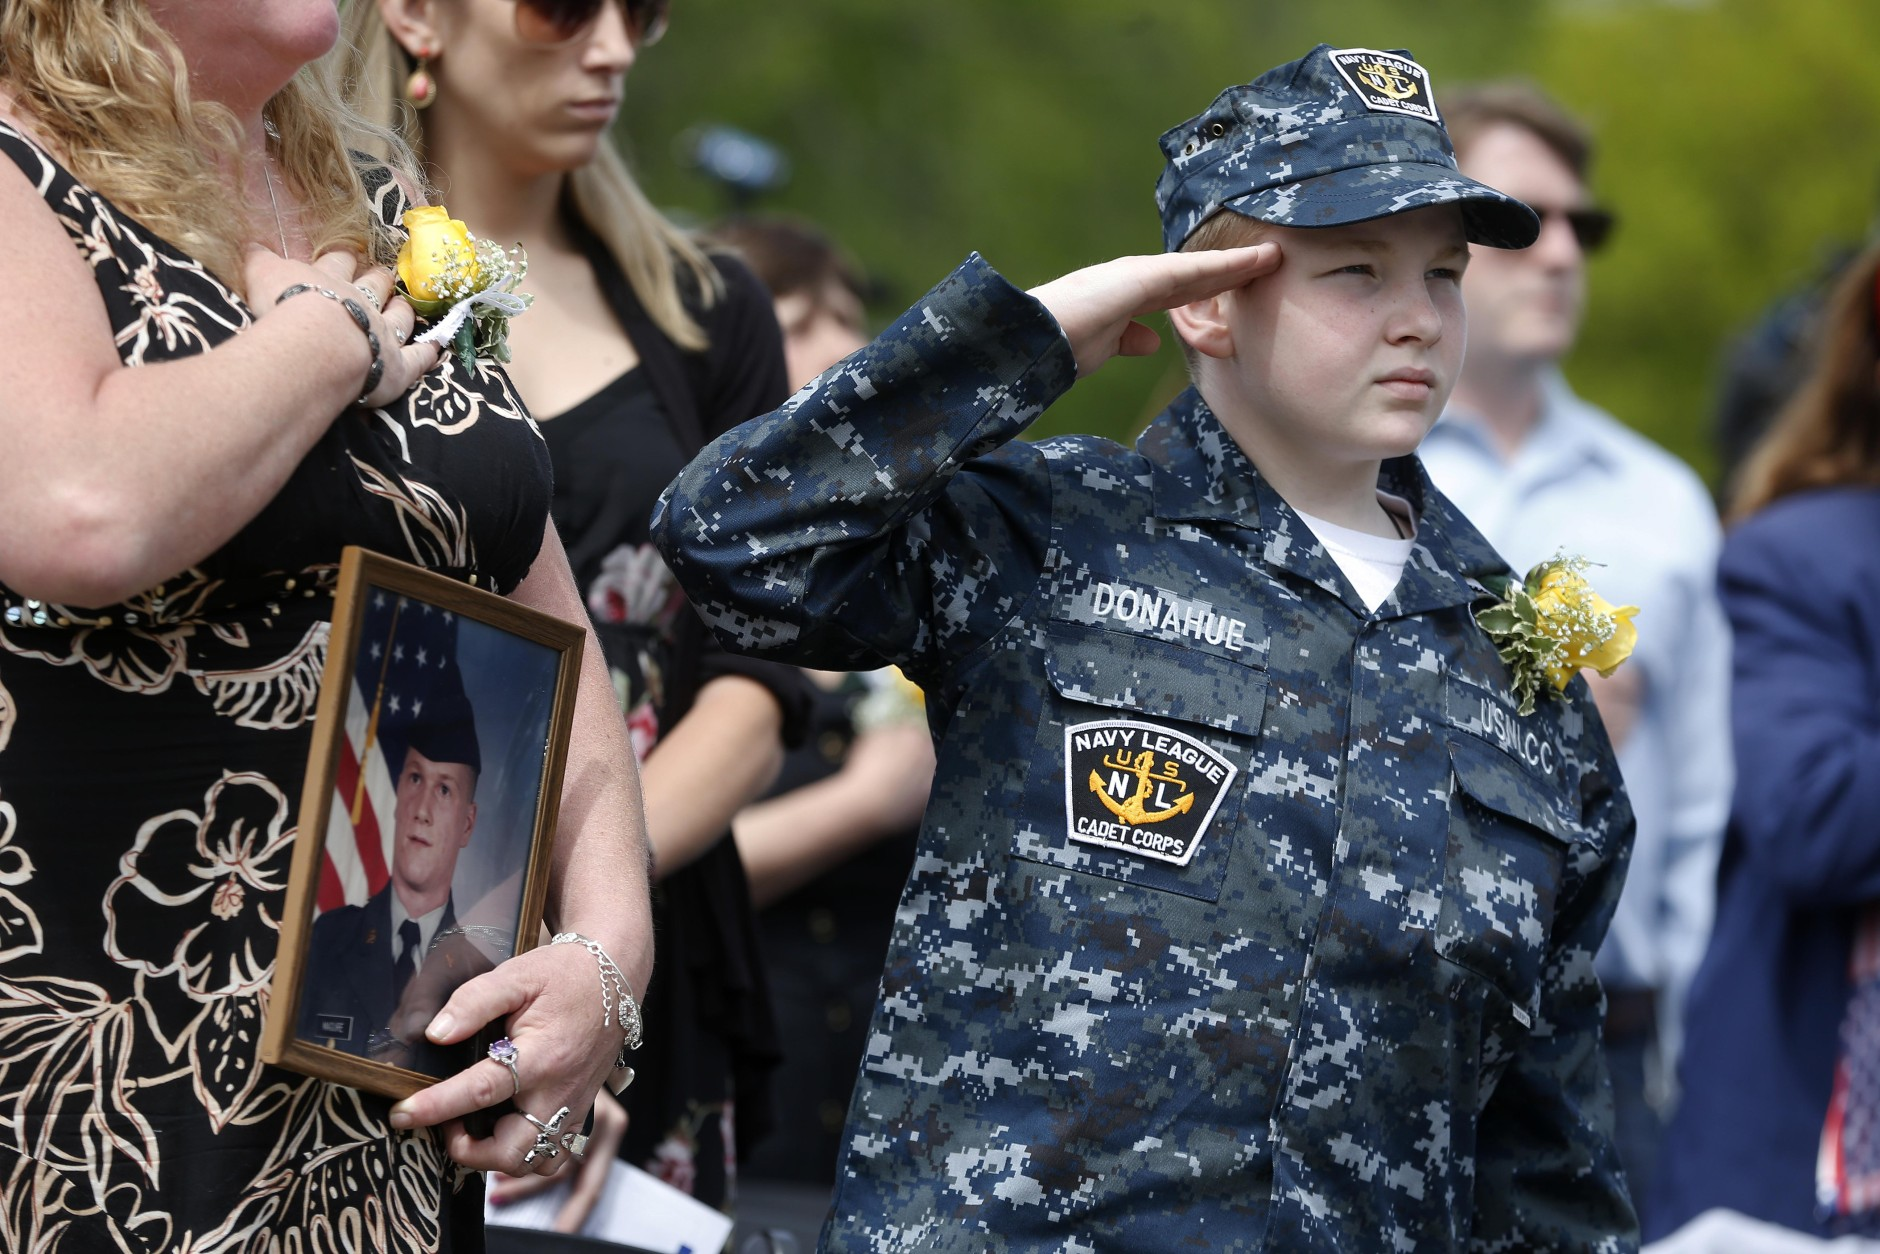 Sharon Maguire, left, of Tewksbury, Mass., holds a picture of her brother Army Spc. Fred Maguire, while standing with her nephew Sean Donahue, right, during the playing of the national anthem at the Massachusetts Military Heroes Fund flag garden on Boston Common in Boston, Thursday, May 21 2015. The fund places approximately 37,000 flags on the Common for Memorial Day to represent the Massachusetts military members who died in service from the Revolutionary War to the present. (AP Photo/Michael Dwyer)